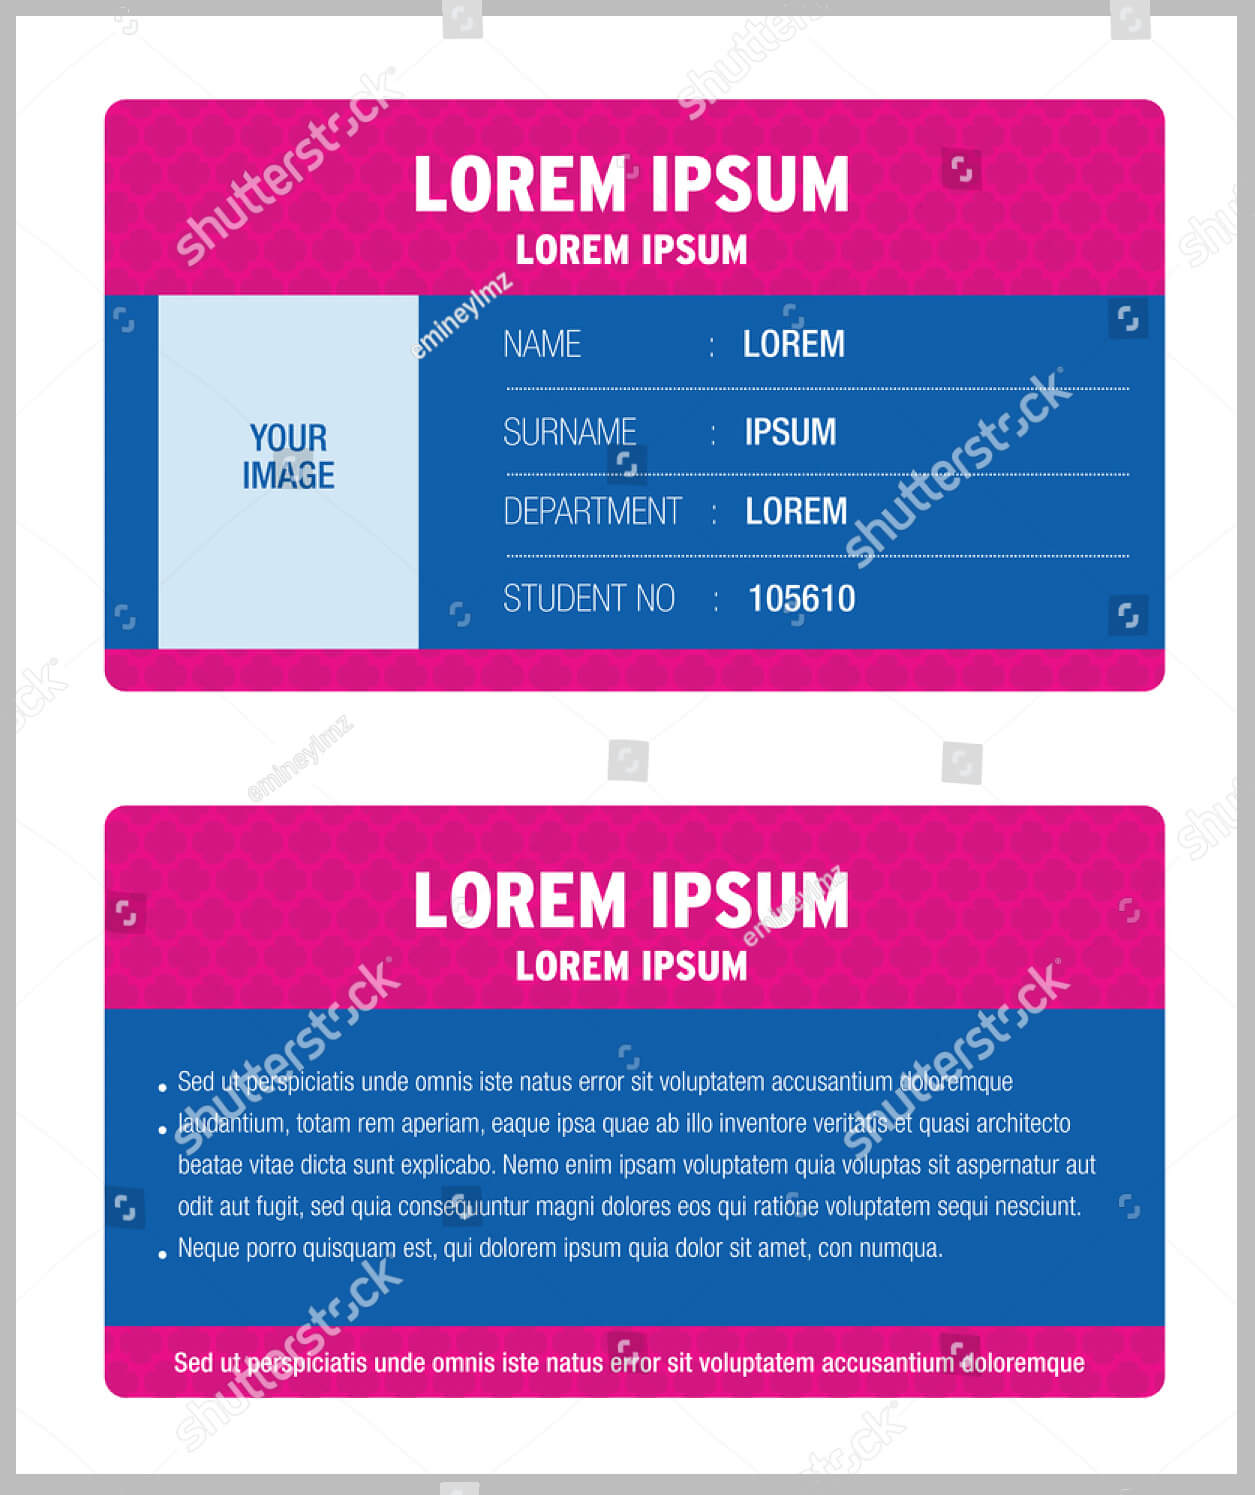 11+ Iconic Student Card Templates - Ai, Psd, Word | Free For Isic Card Template